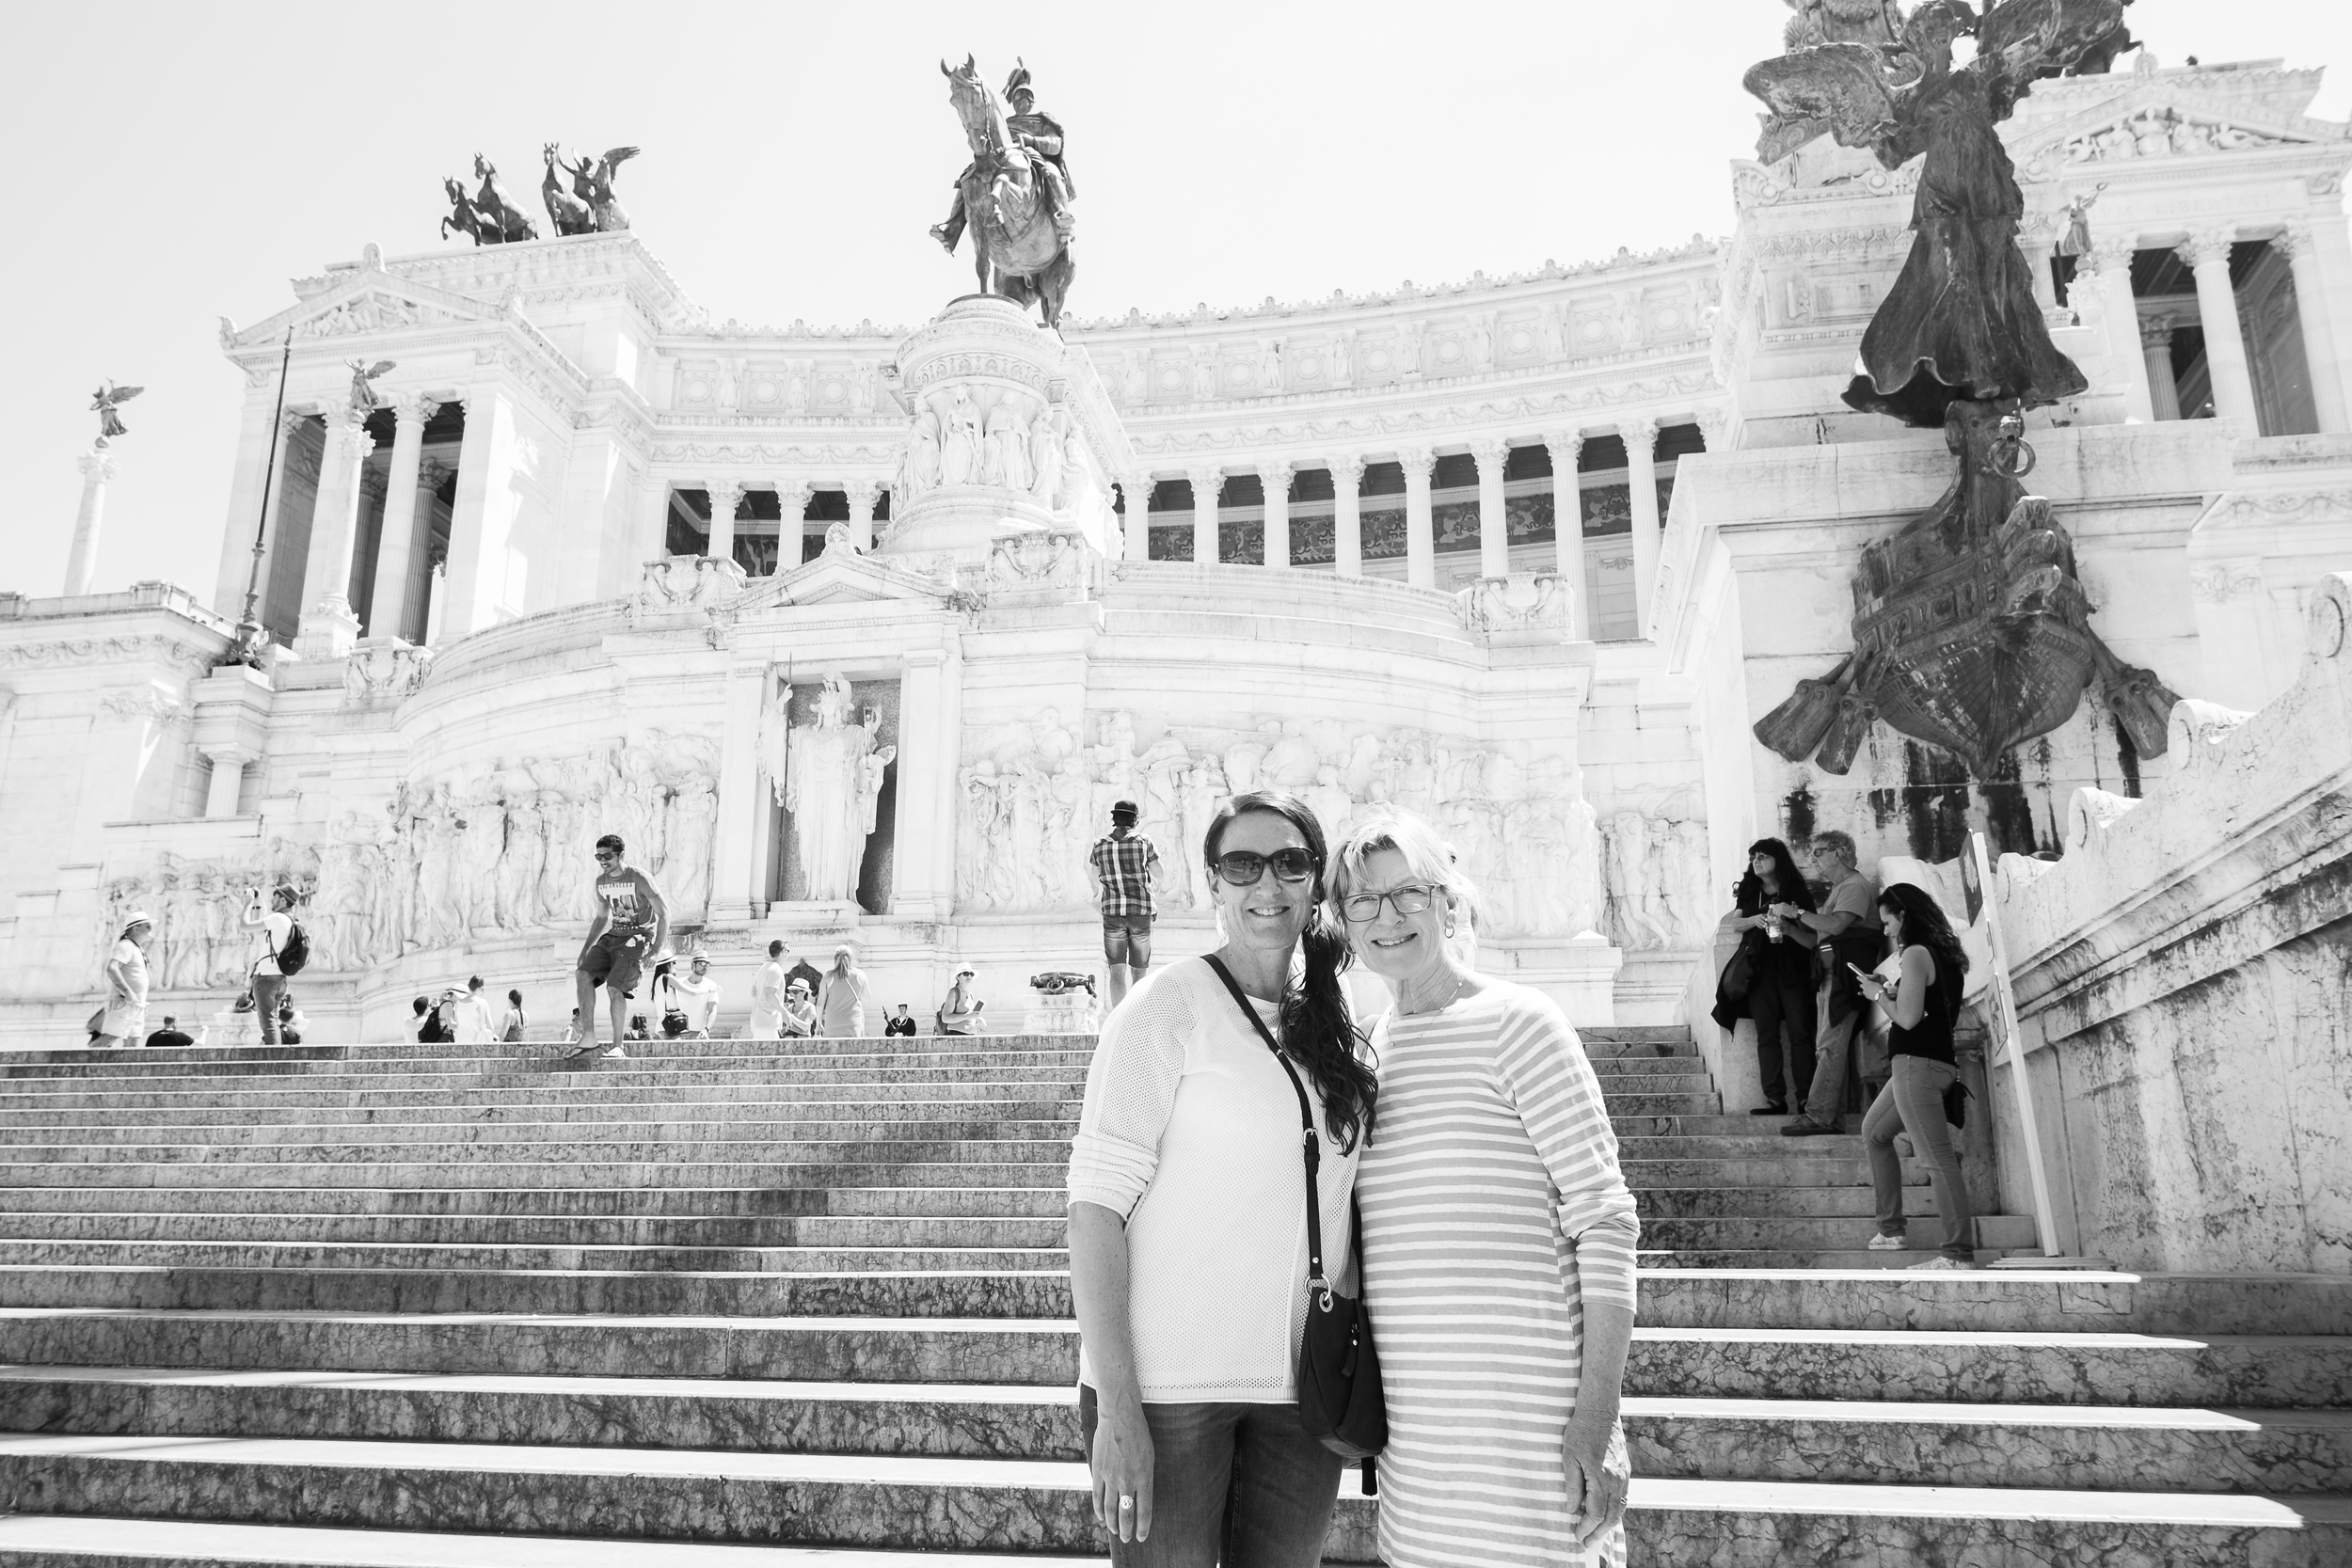 Vittorio Emmanuele II Monument, built in 1870 celebrating the unification of modern Italy.